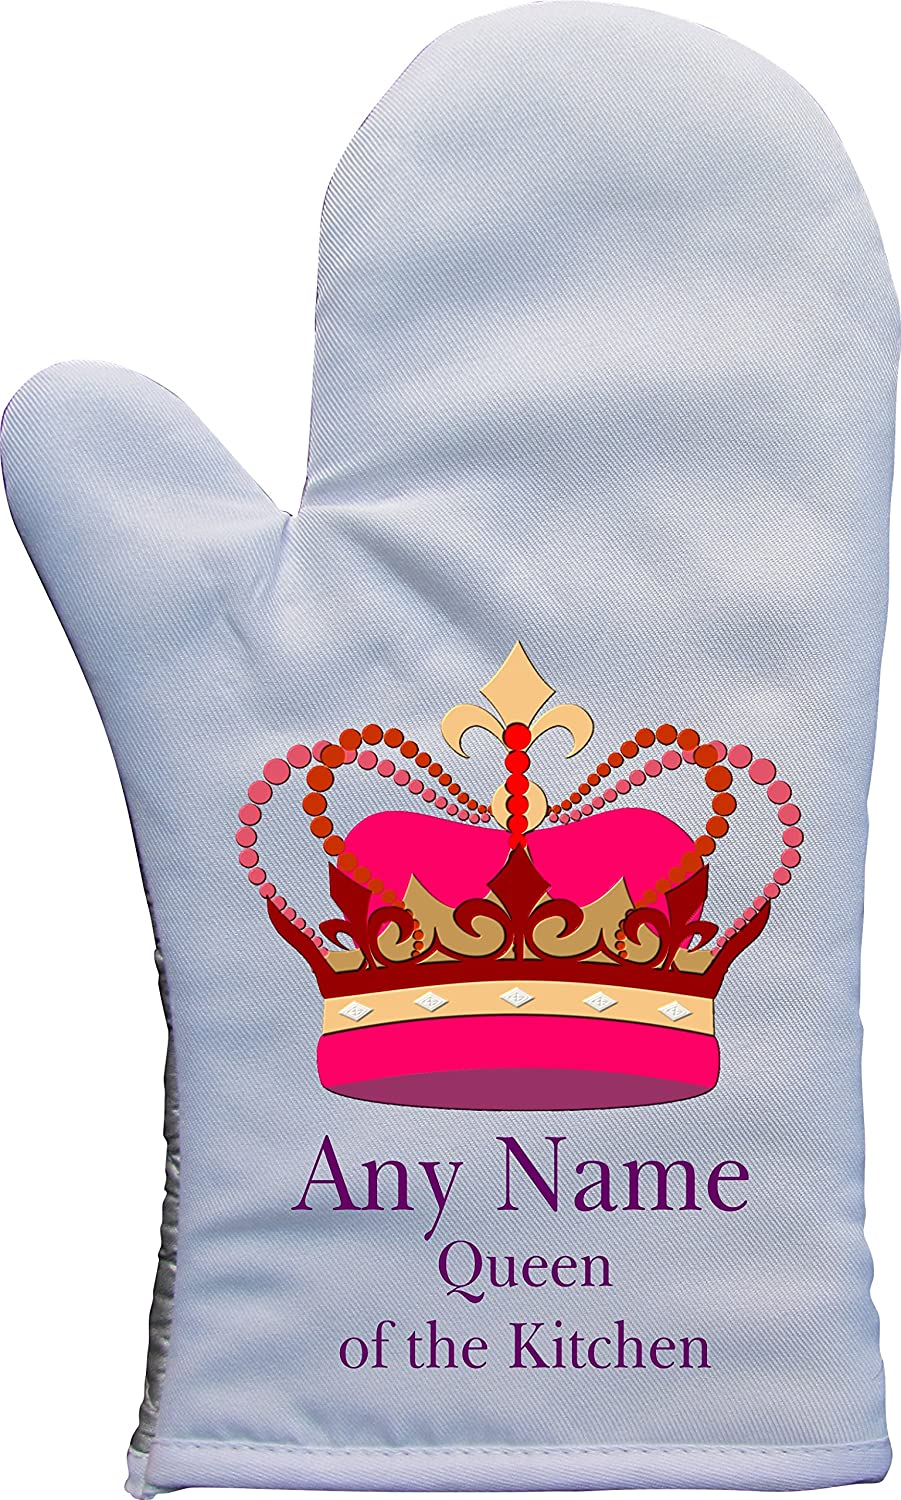 PERSONALISED QUEEN OF THE KITCHEN PRINT TEFLON COATED OVEN MITT OVEN GLOVE PRESENT2FUTURE